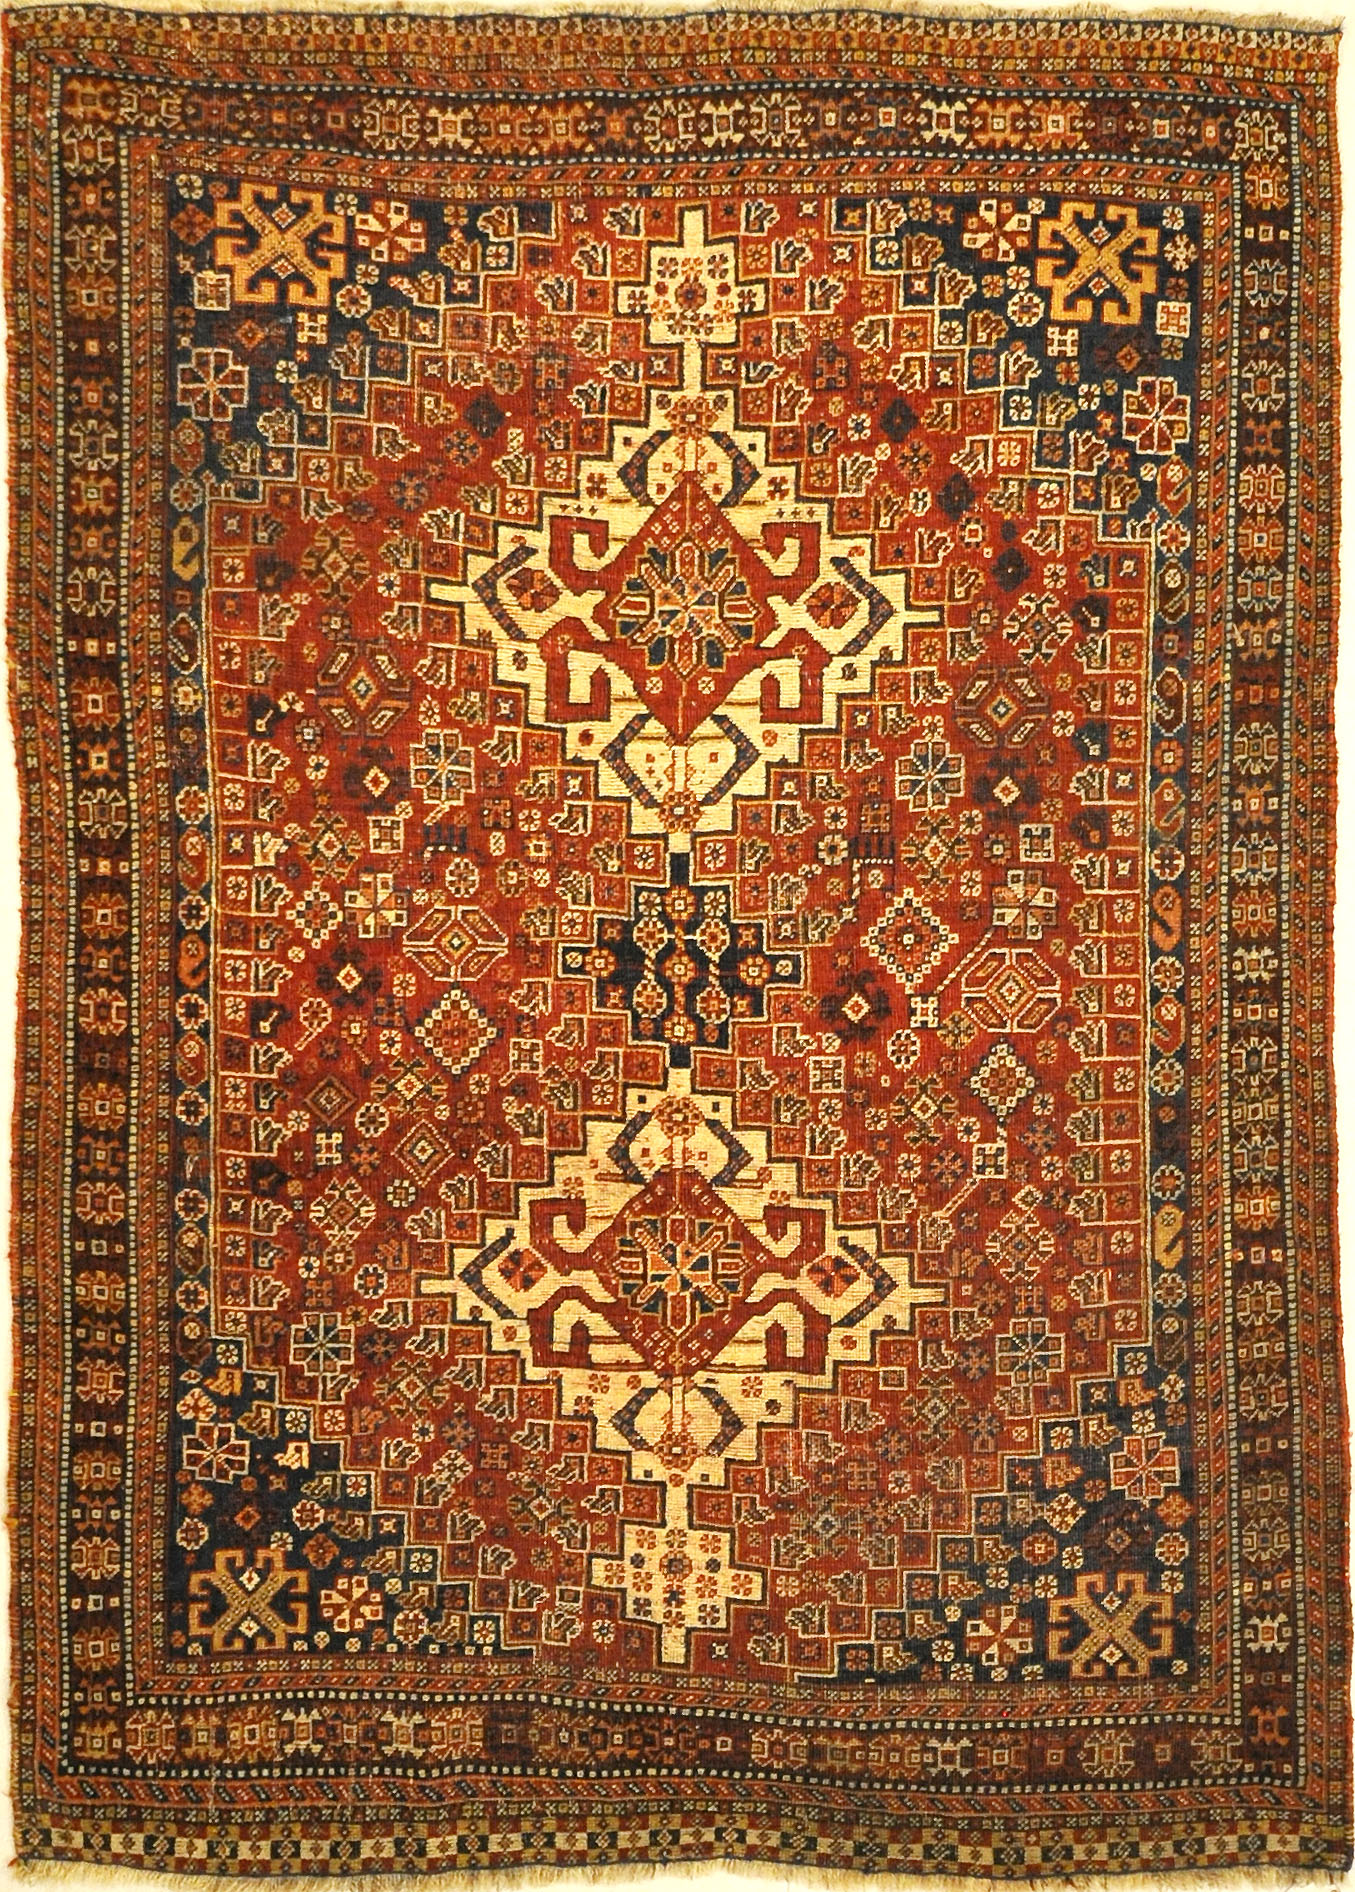 Antique Persian Qashqai Rug. A piece of genuine woven carpet art sold by the Santa Barbara Design Center, Rugs and More in Santa Barbara, California.